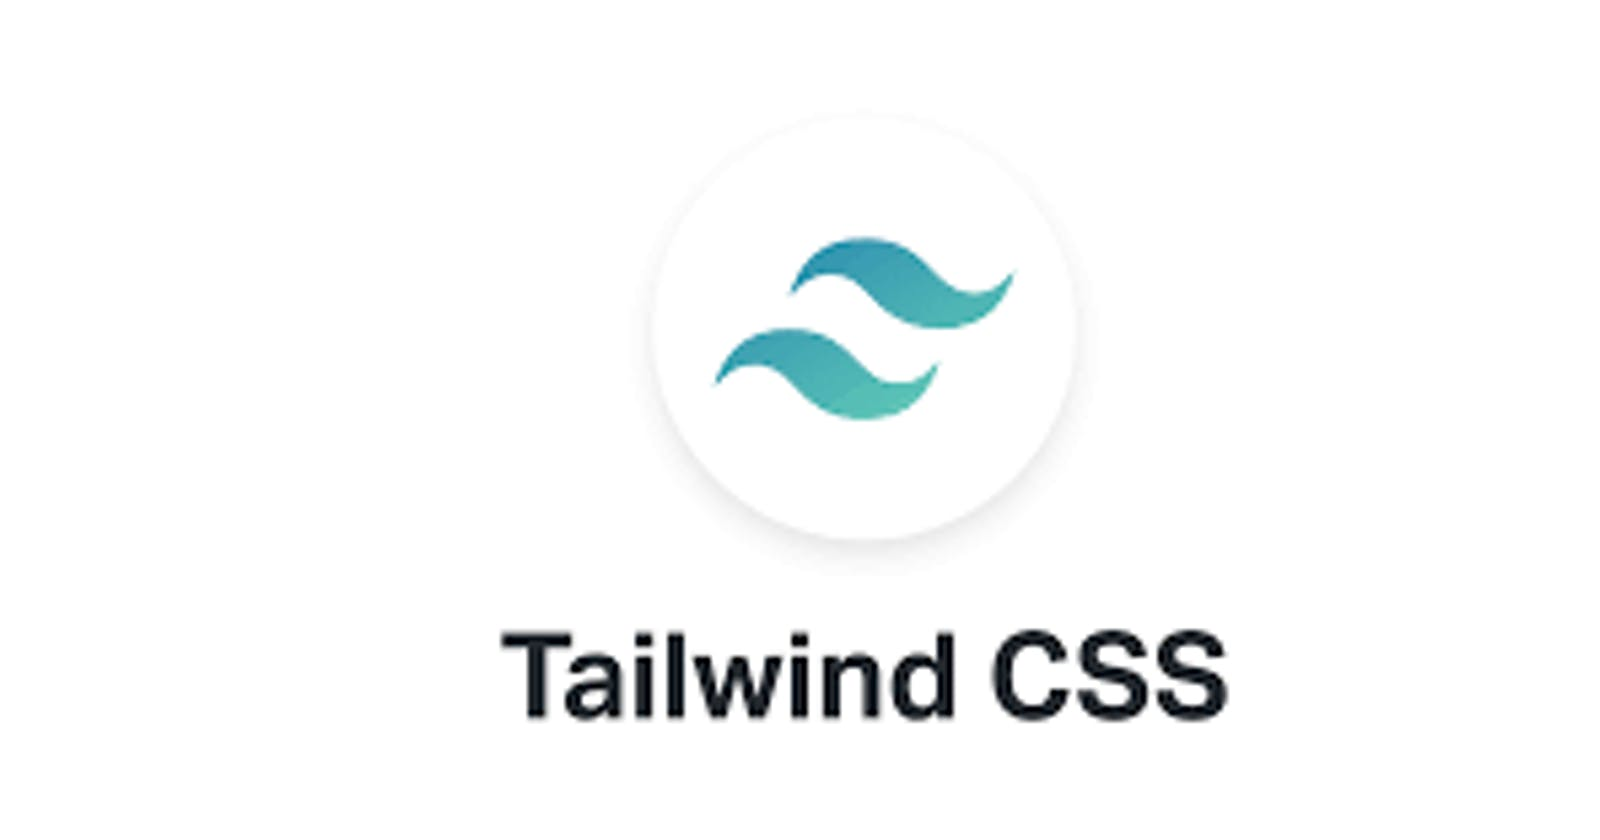 Building a testimonial card with TailwindCSS